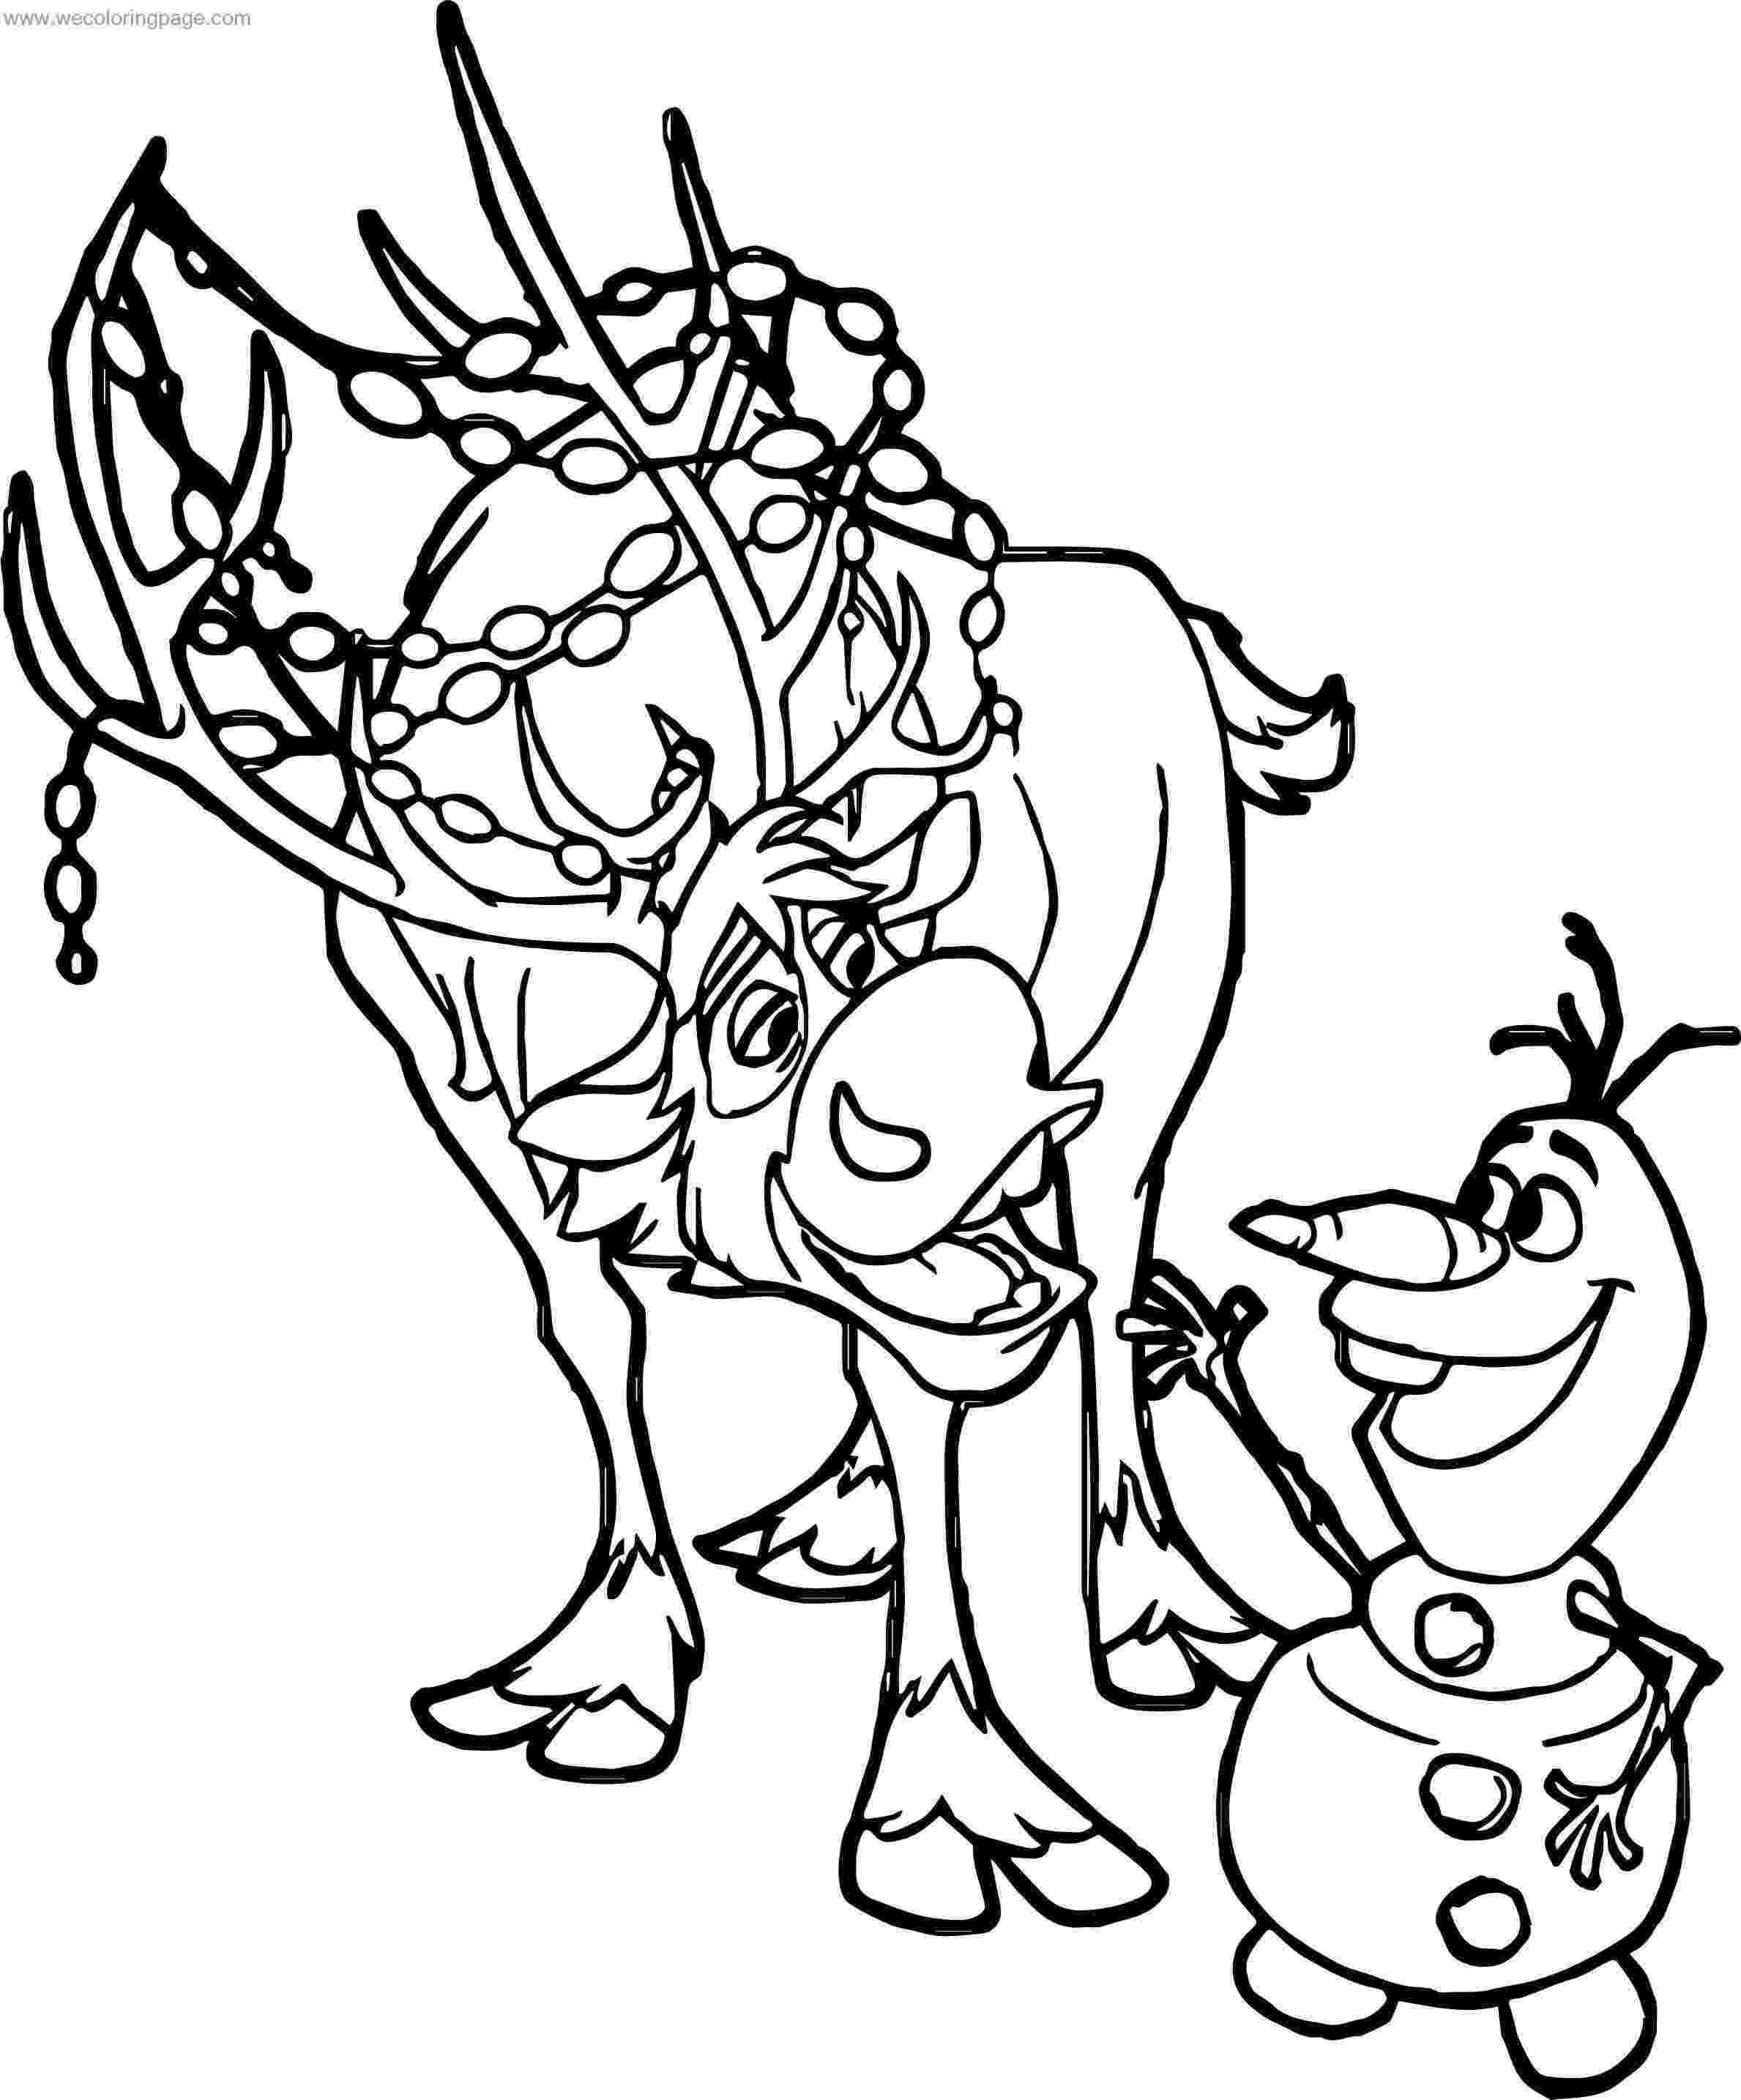 sven coloring pages 42 frozen sven coloring pages frozen coloring pages sven coloring pages